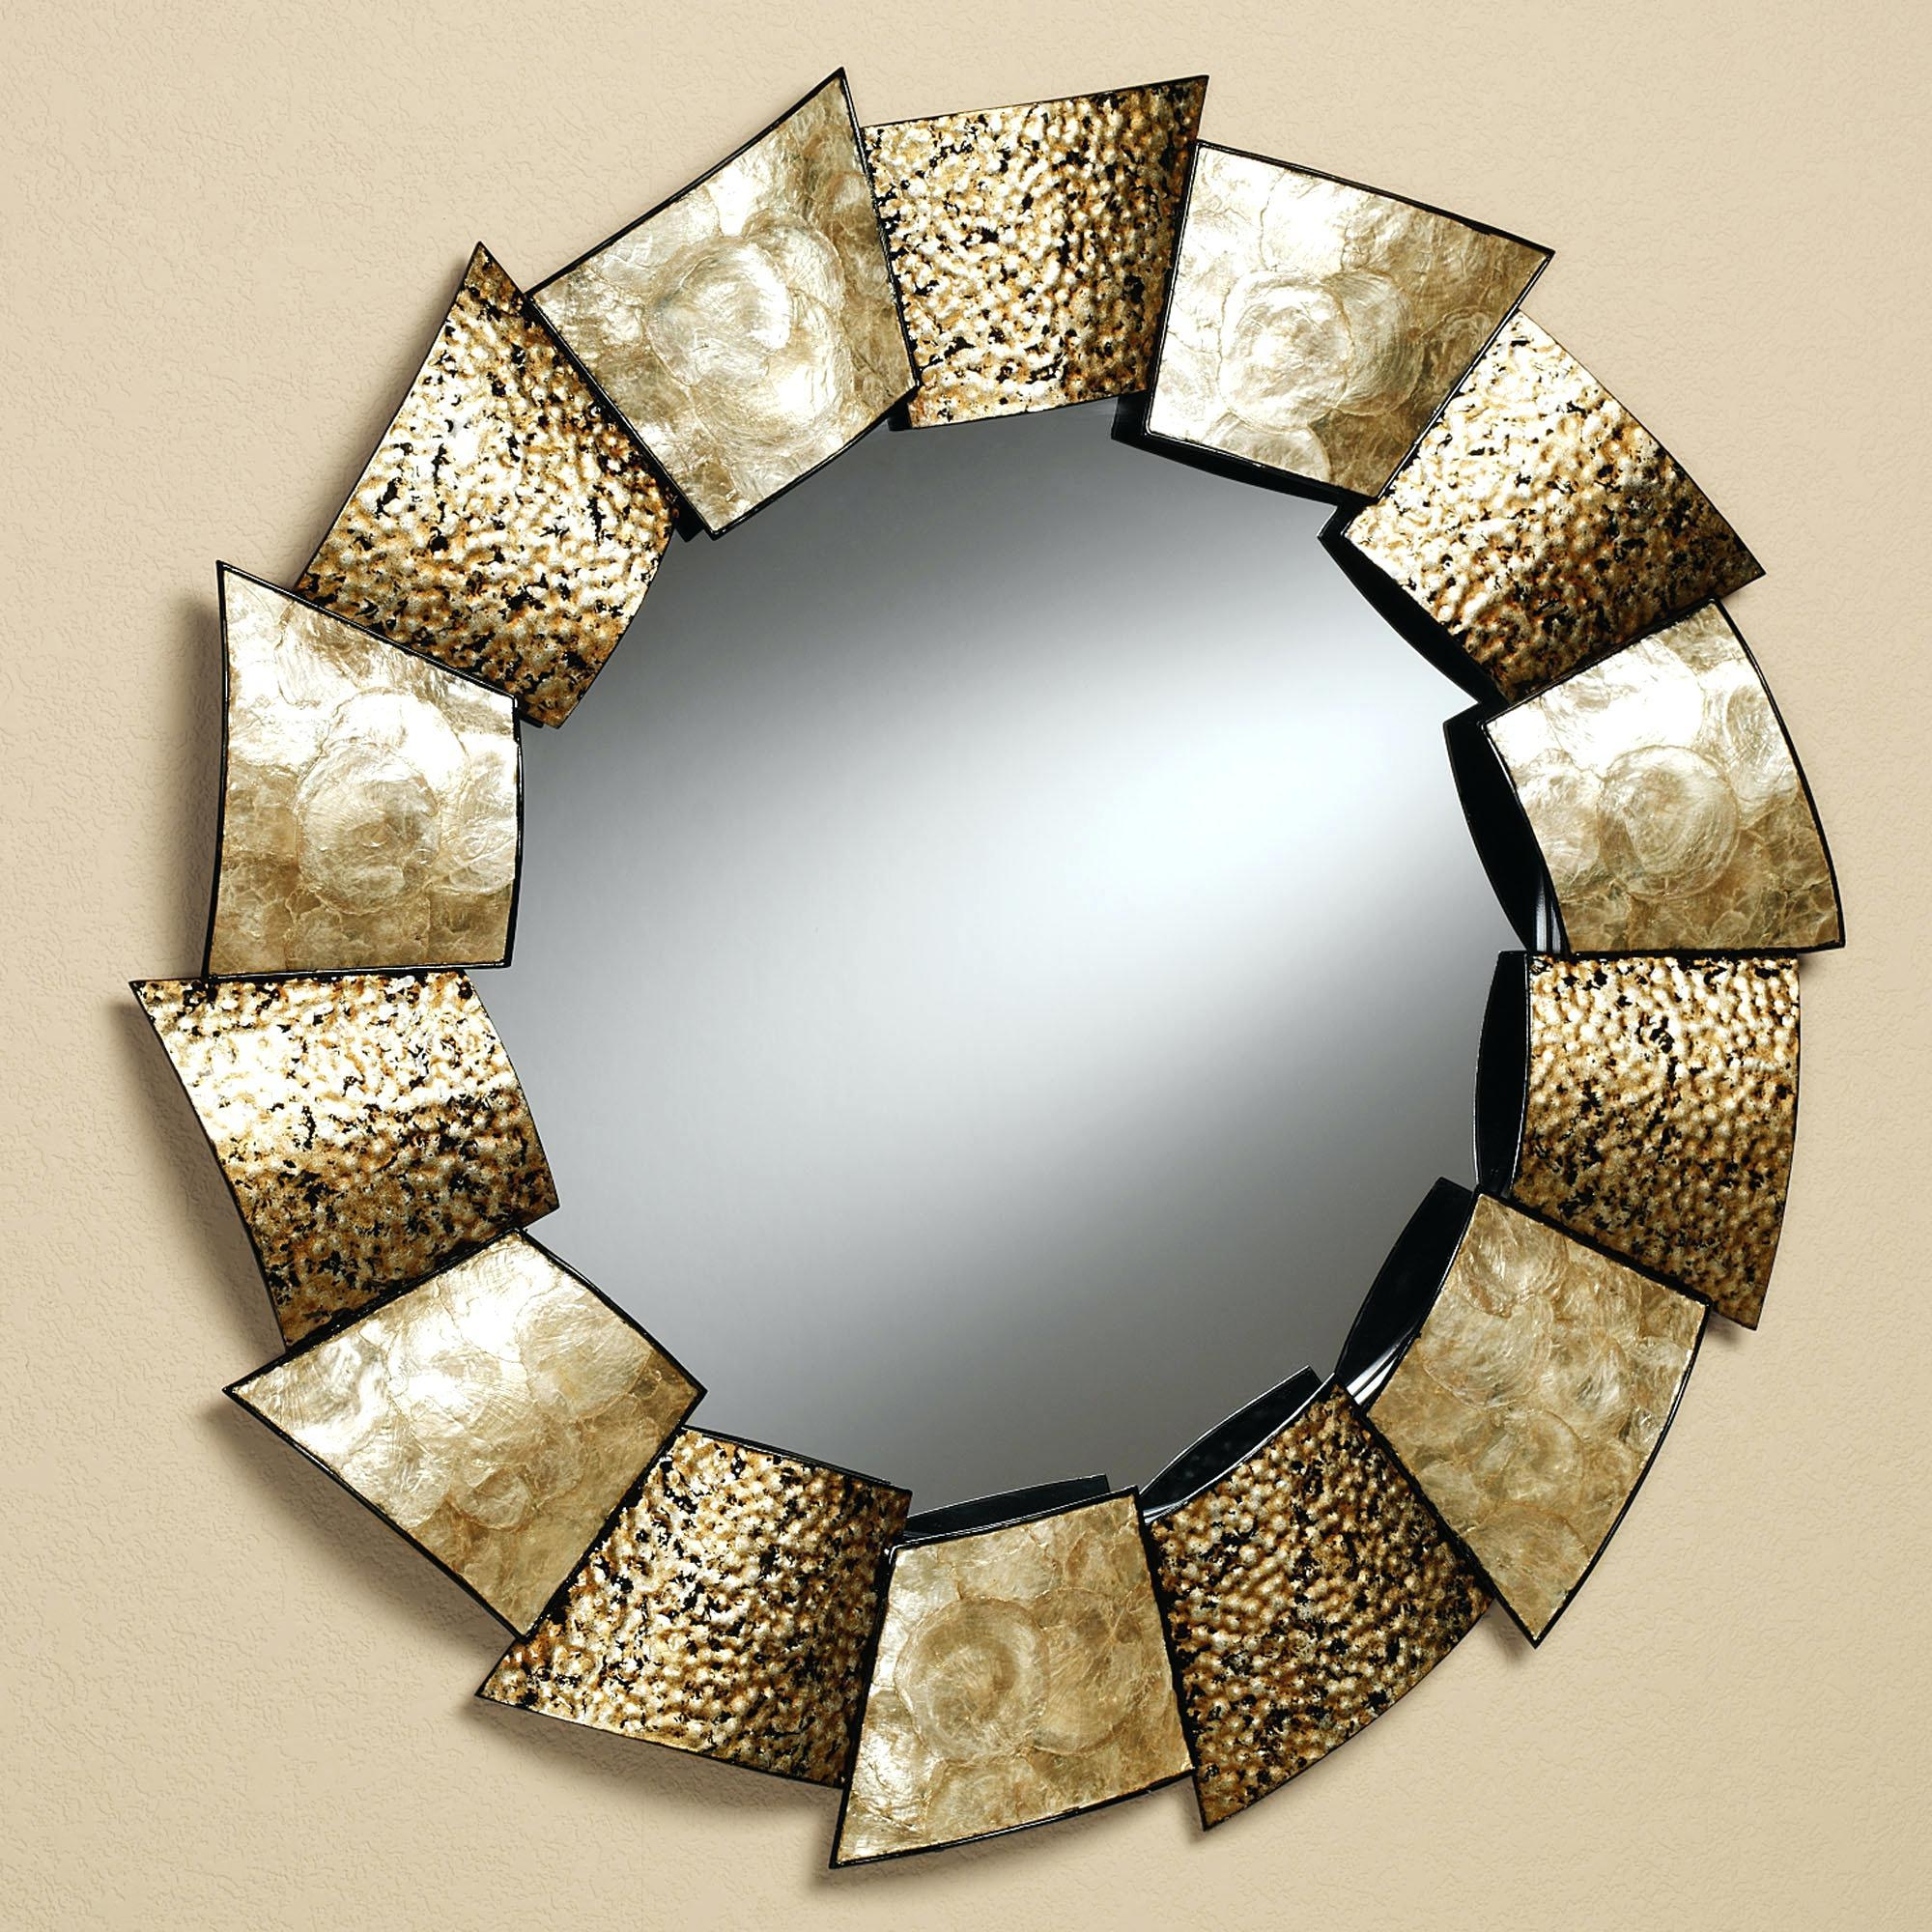 Unique Wall Mirror Decor – Shopwiz Within Oval Shaped Wall Mirrors (Image 16 of 20)